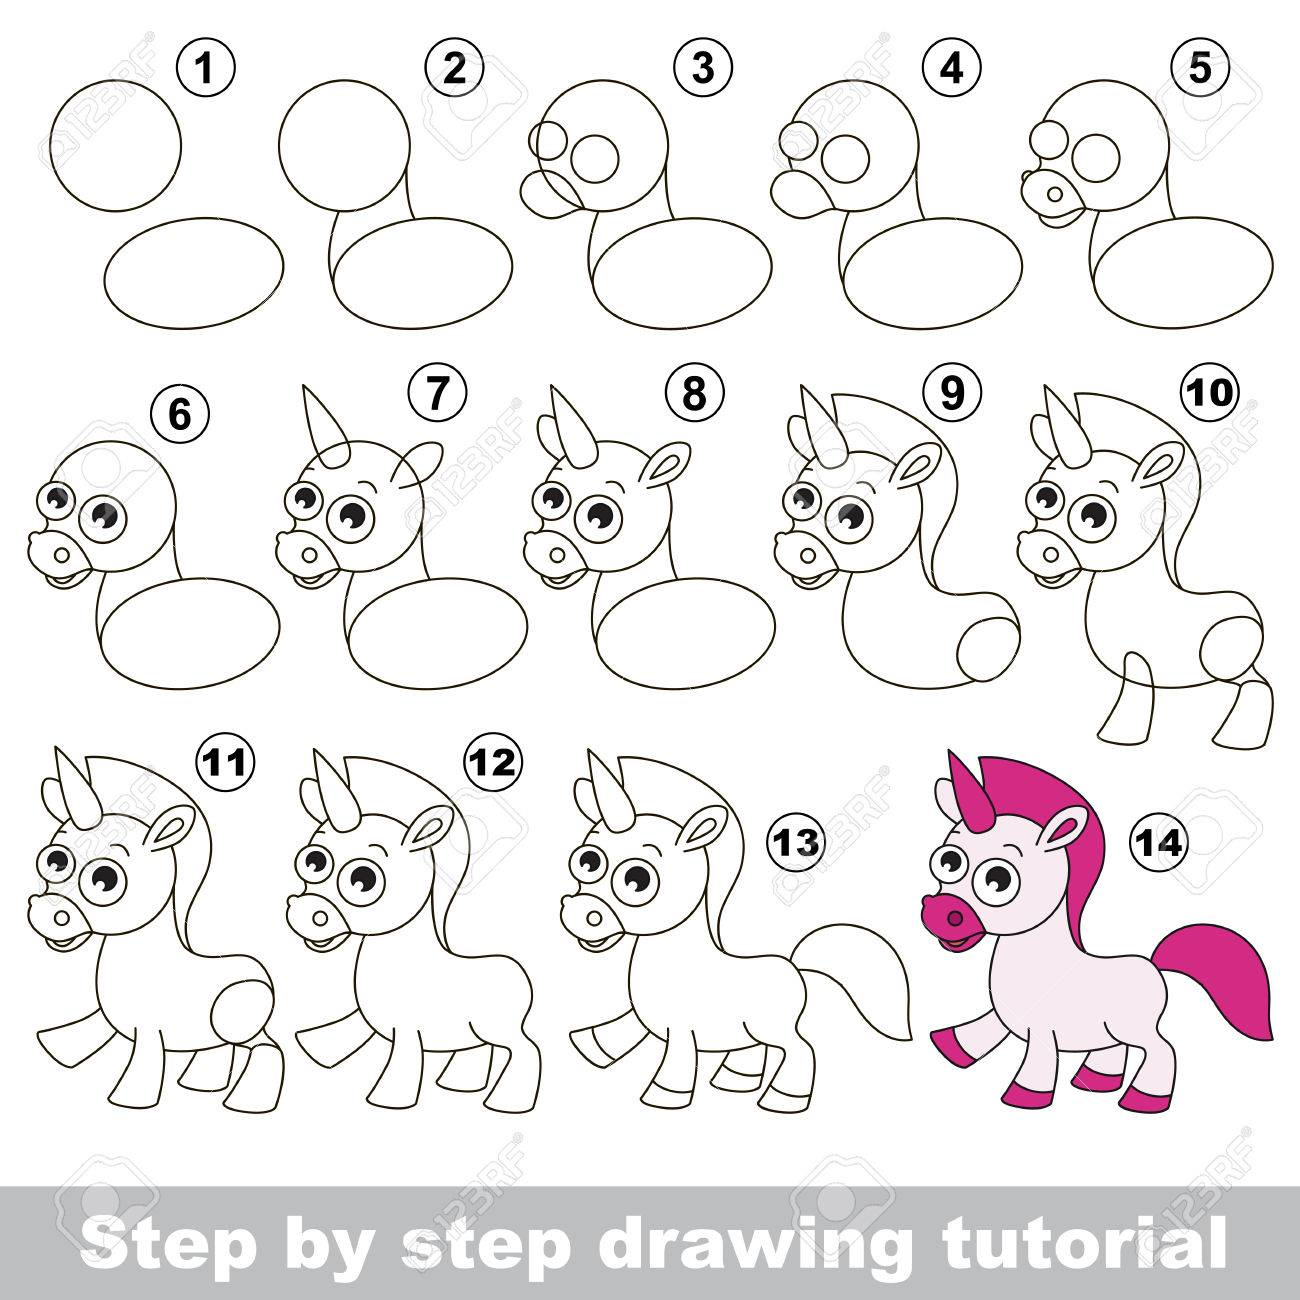 Drawing Tutorial For Children How To Draw The Funny Unicorn Royalty